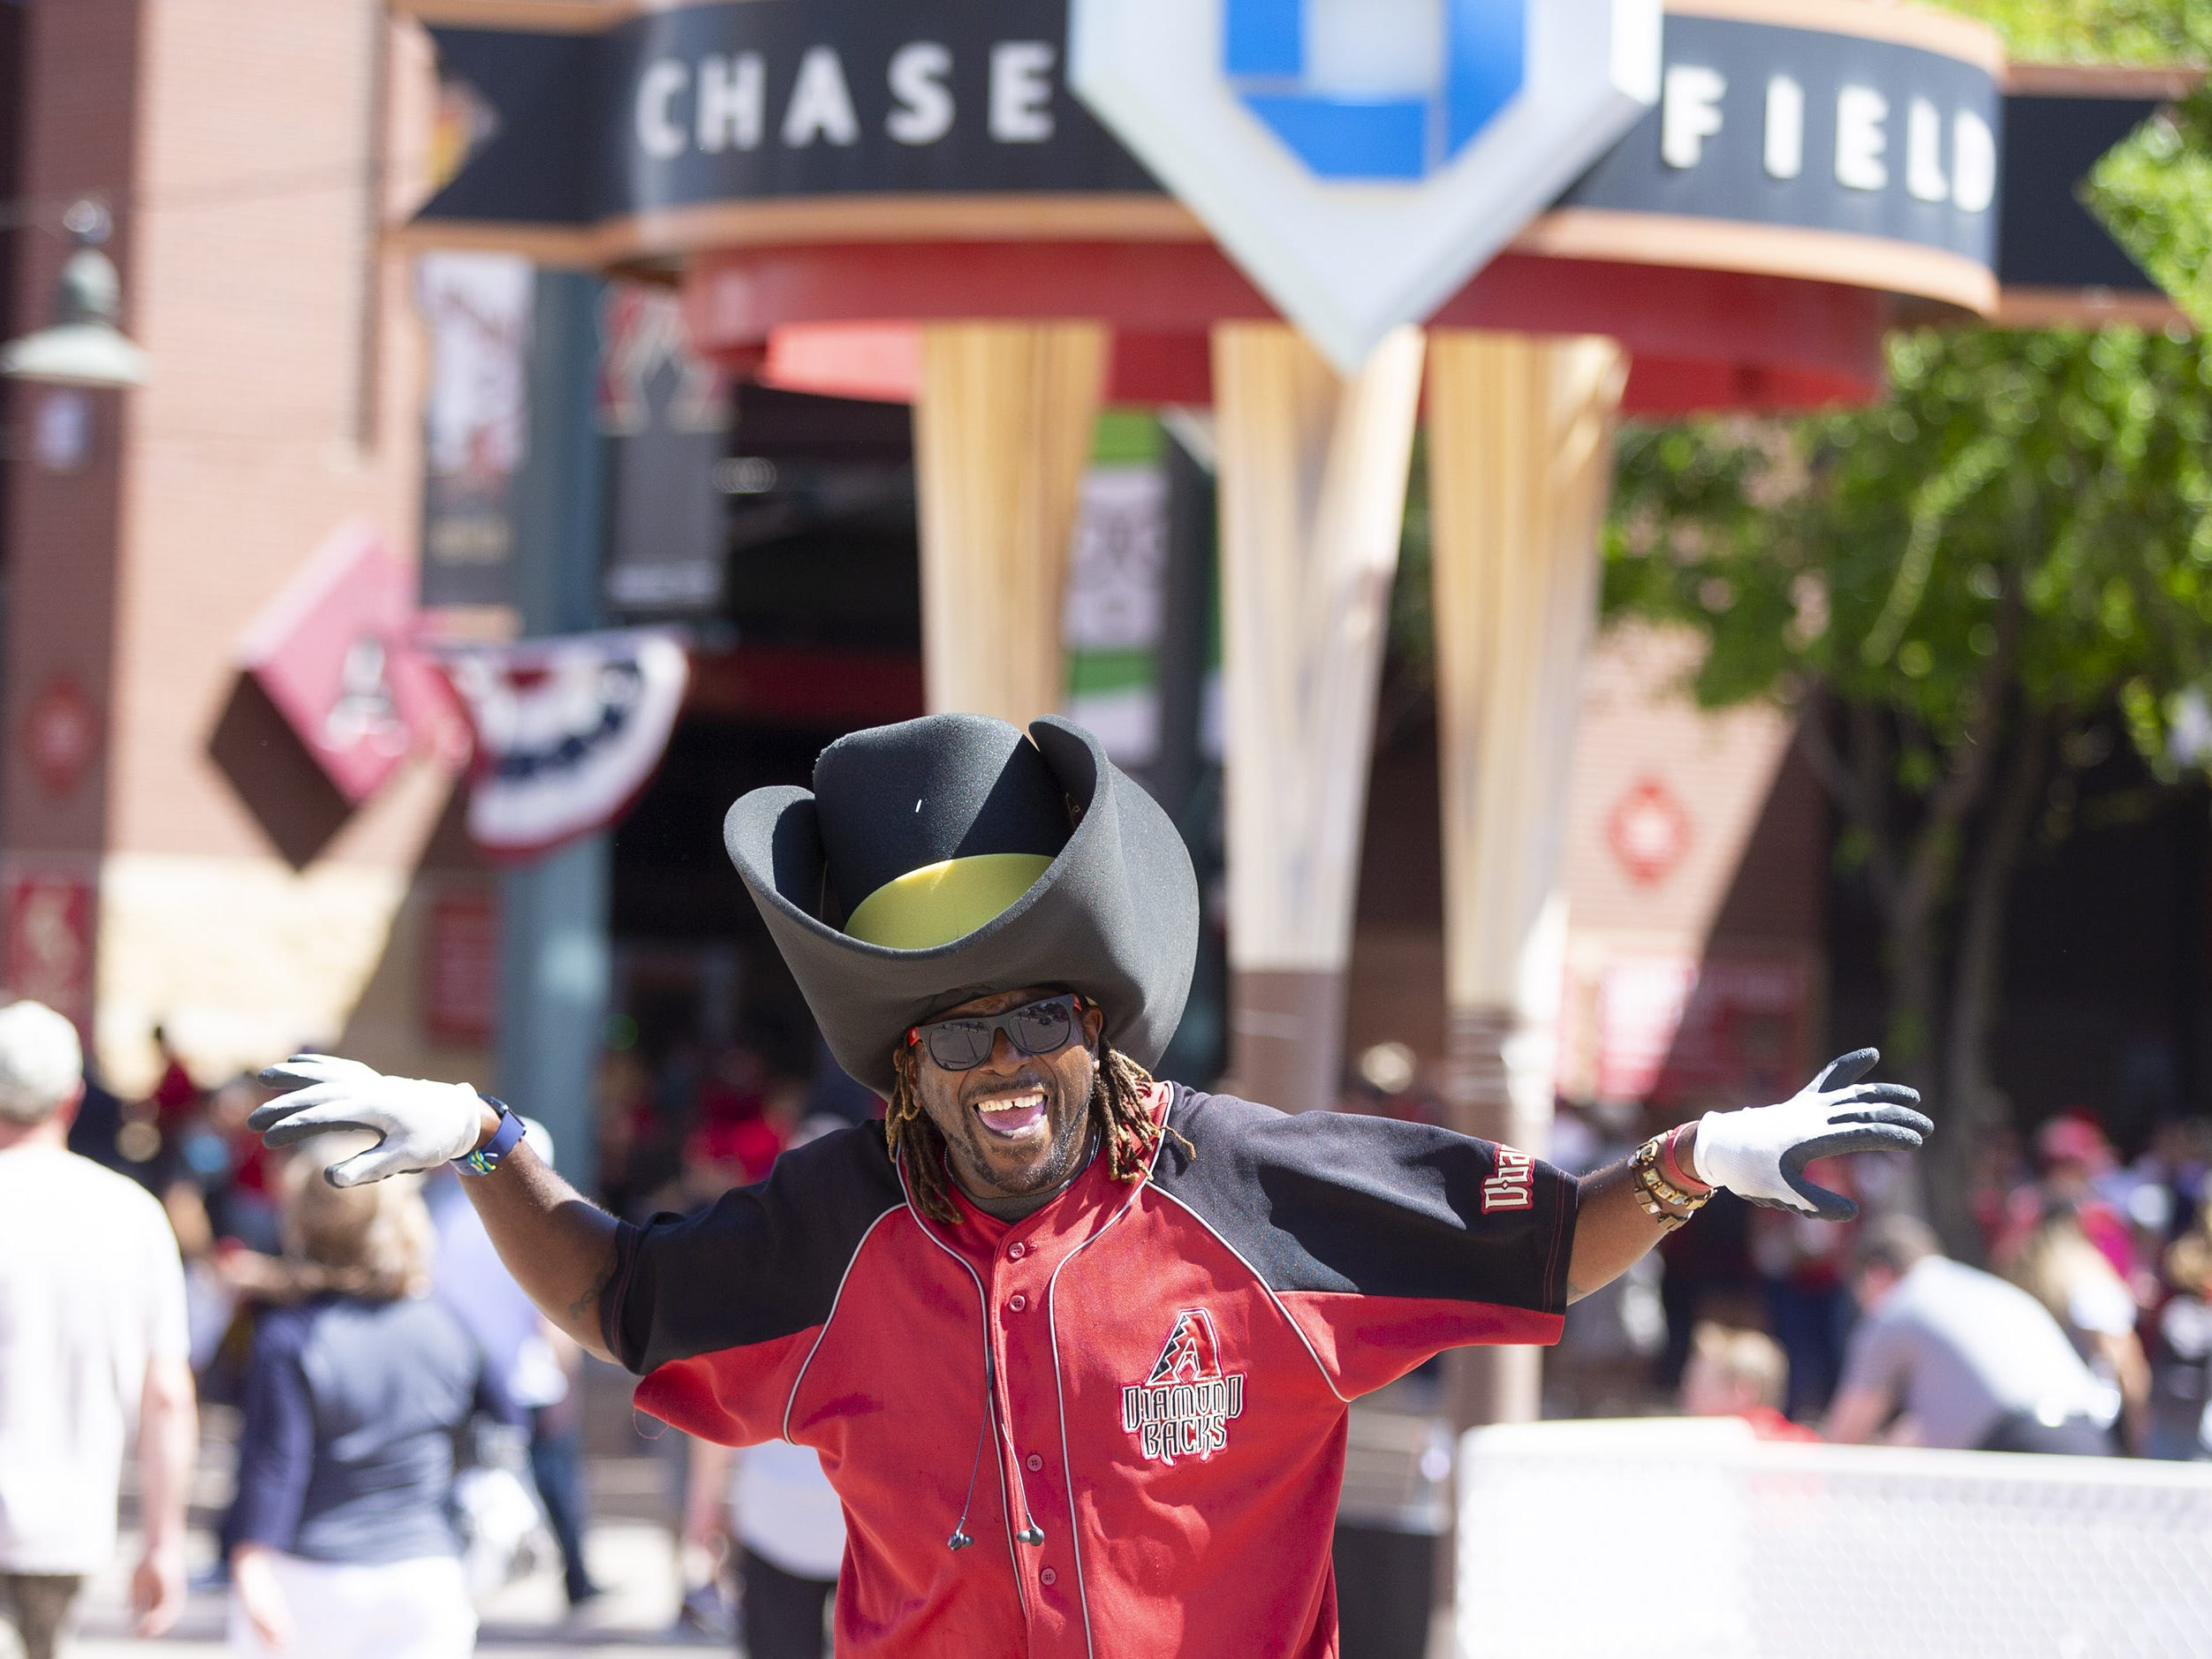 Shamon Ingram, of Phoenix,  celebrates Opening Day during a street festival at Chase Field in Phoenix on April 5.